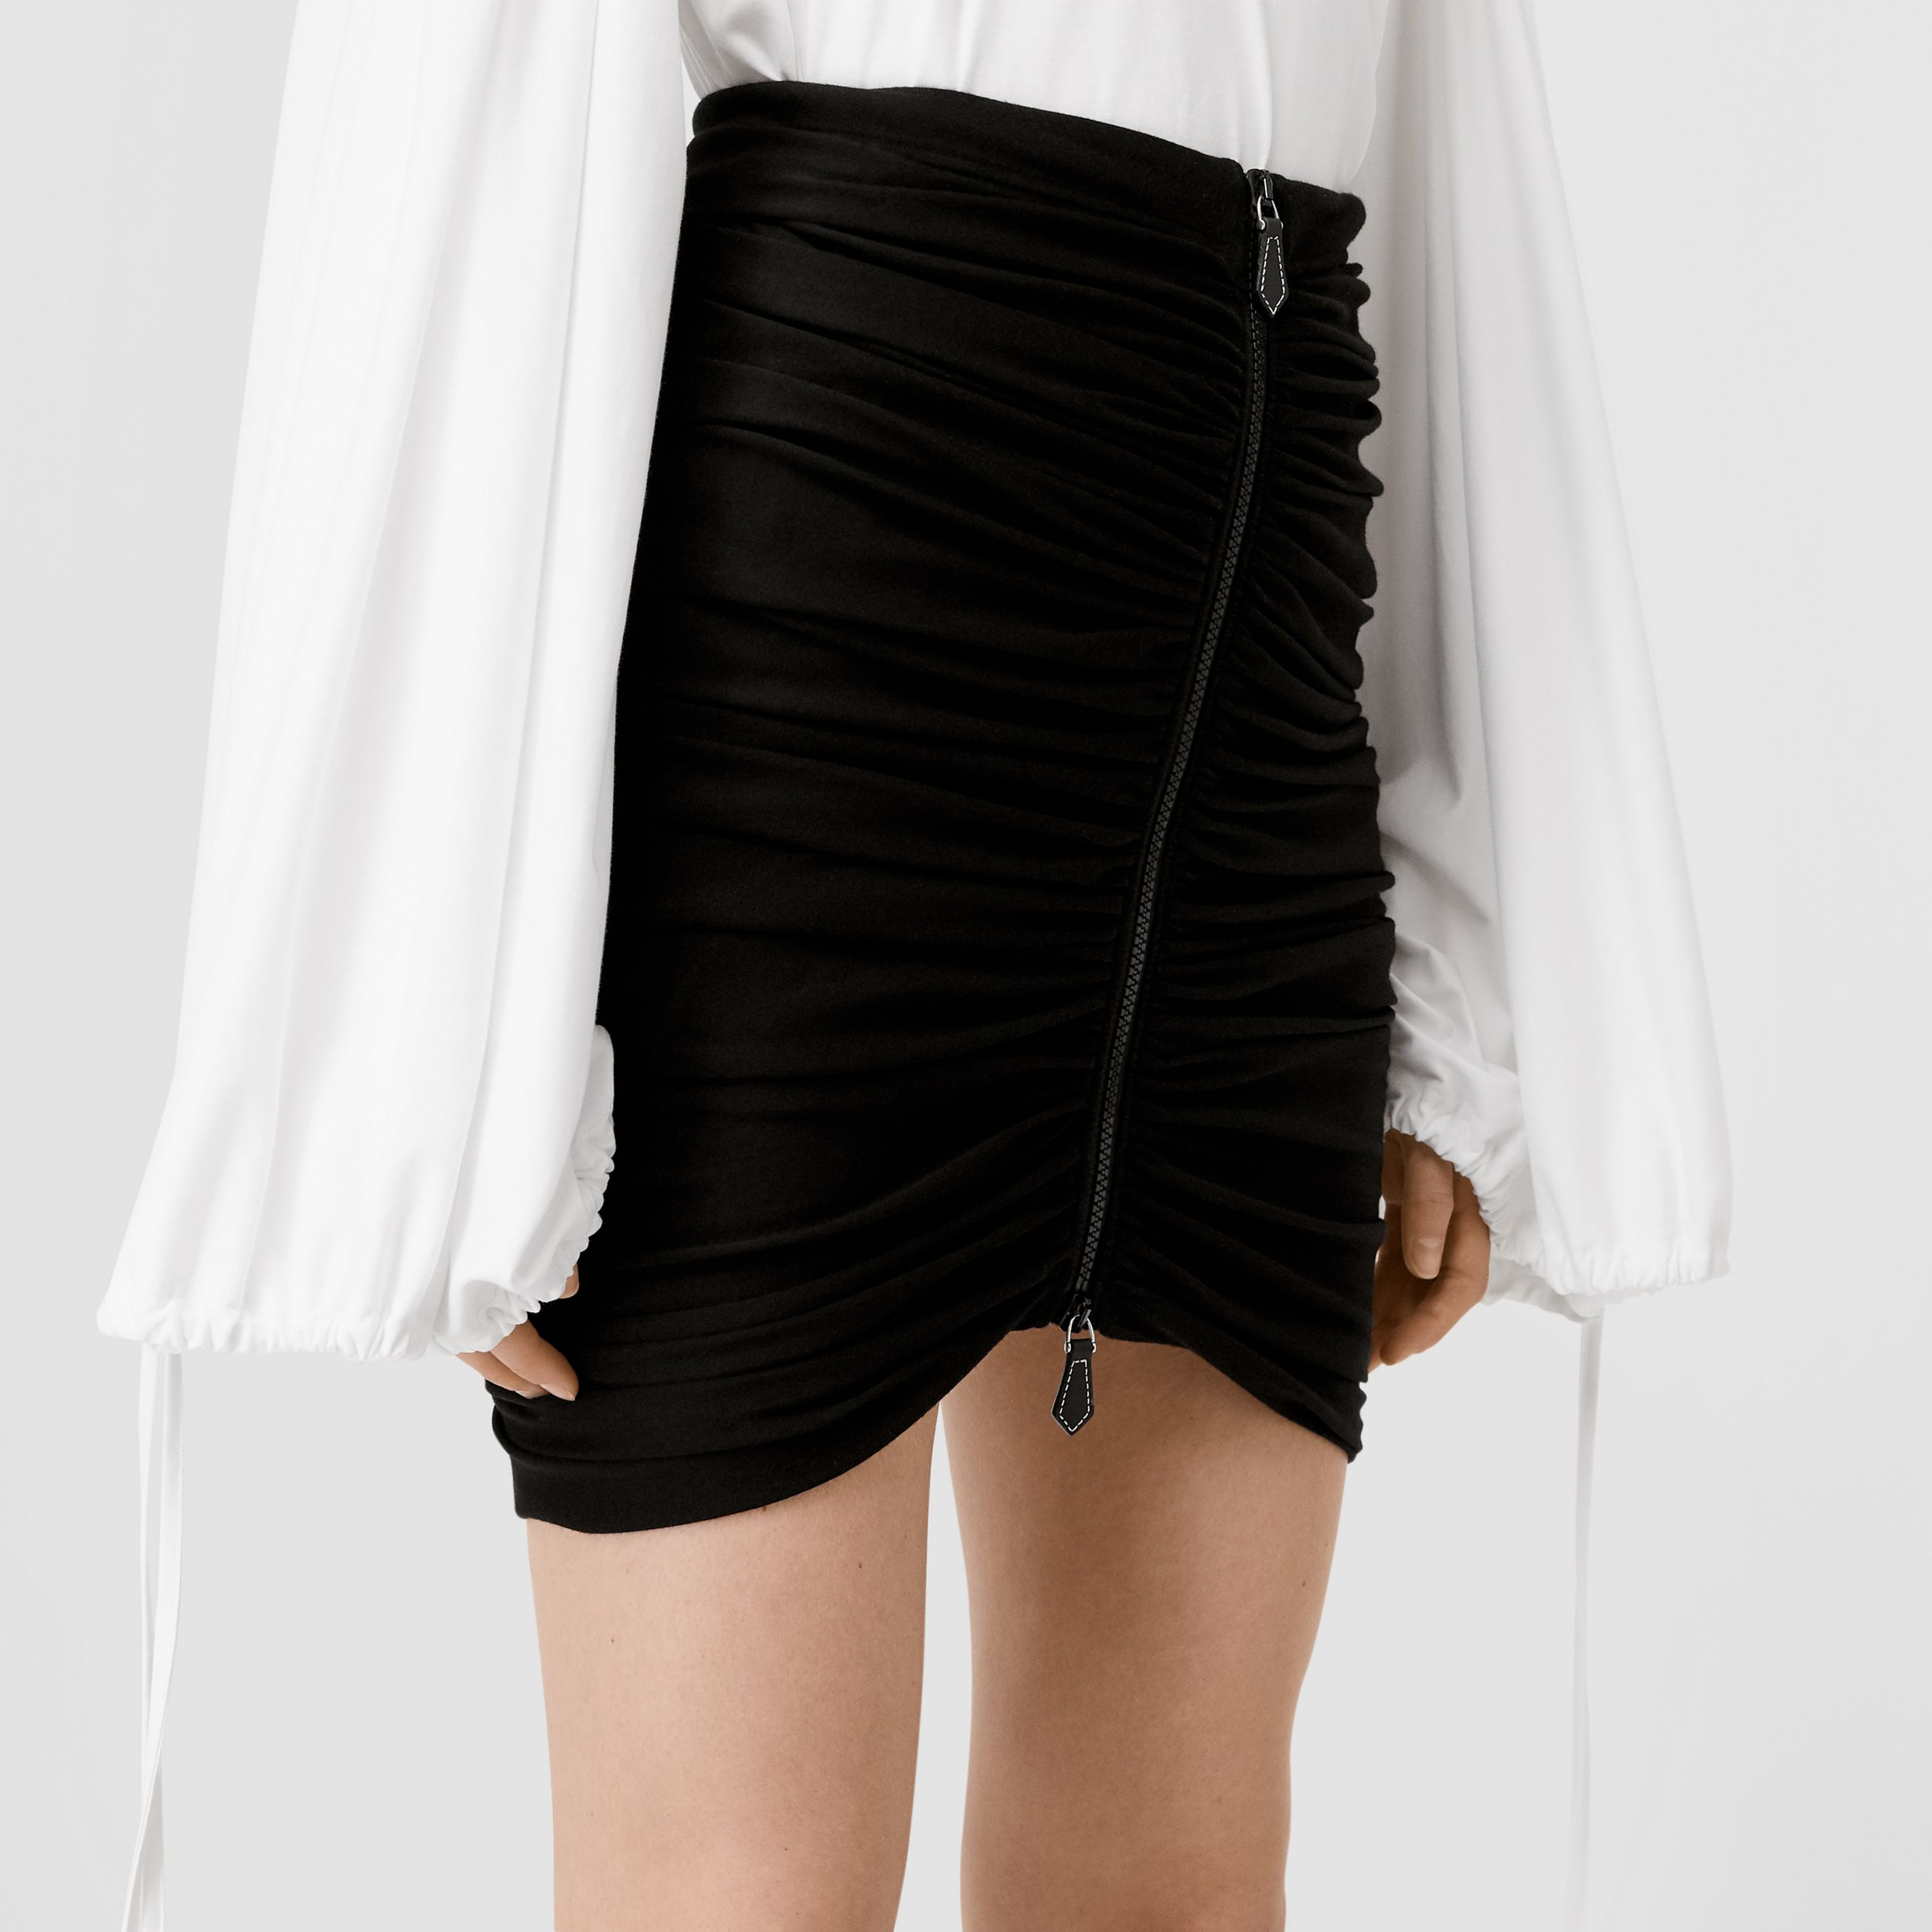 Ruched Jersey Mini Skirt in Black - Women | Burberry Australia - 2